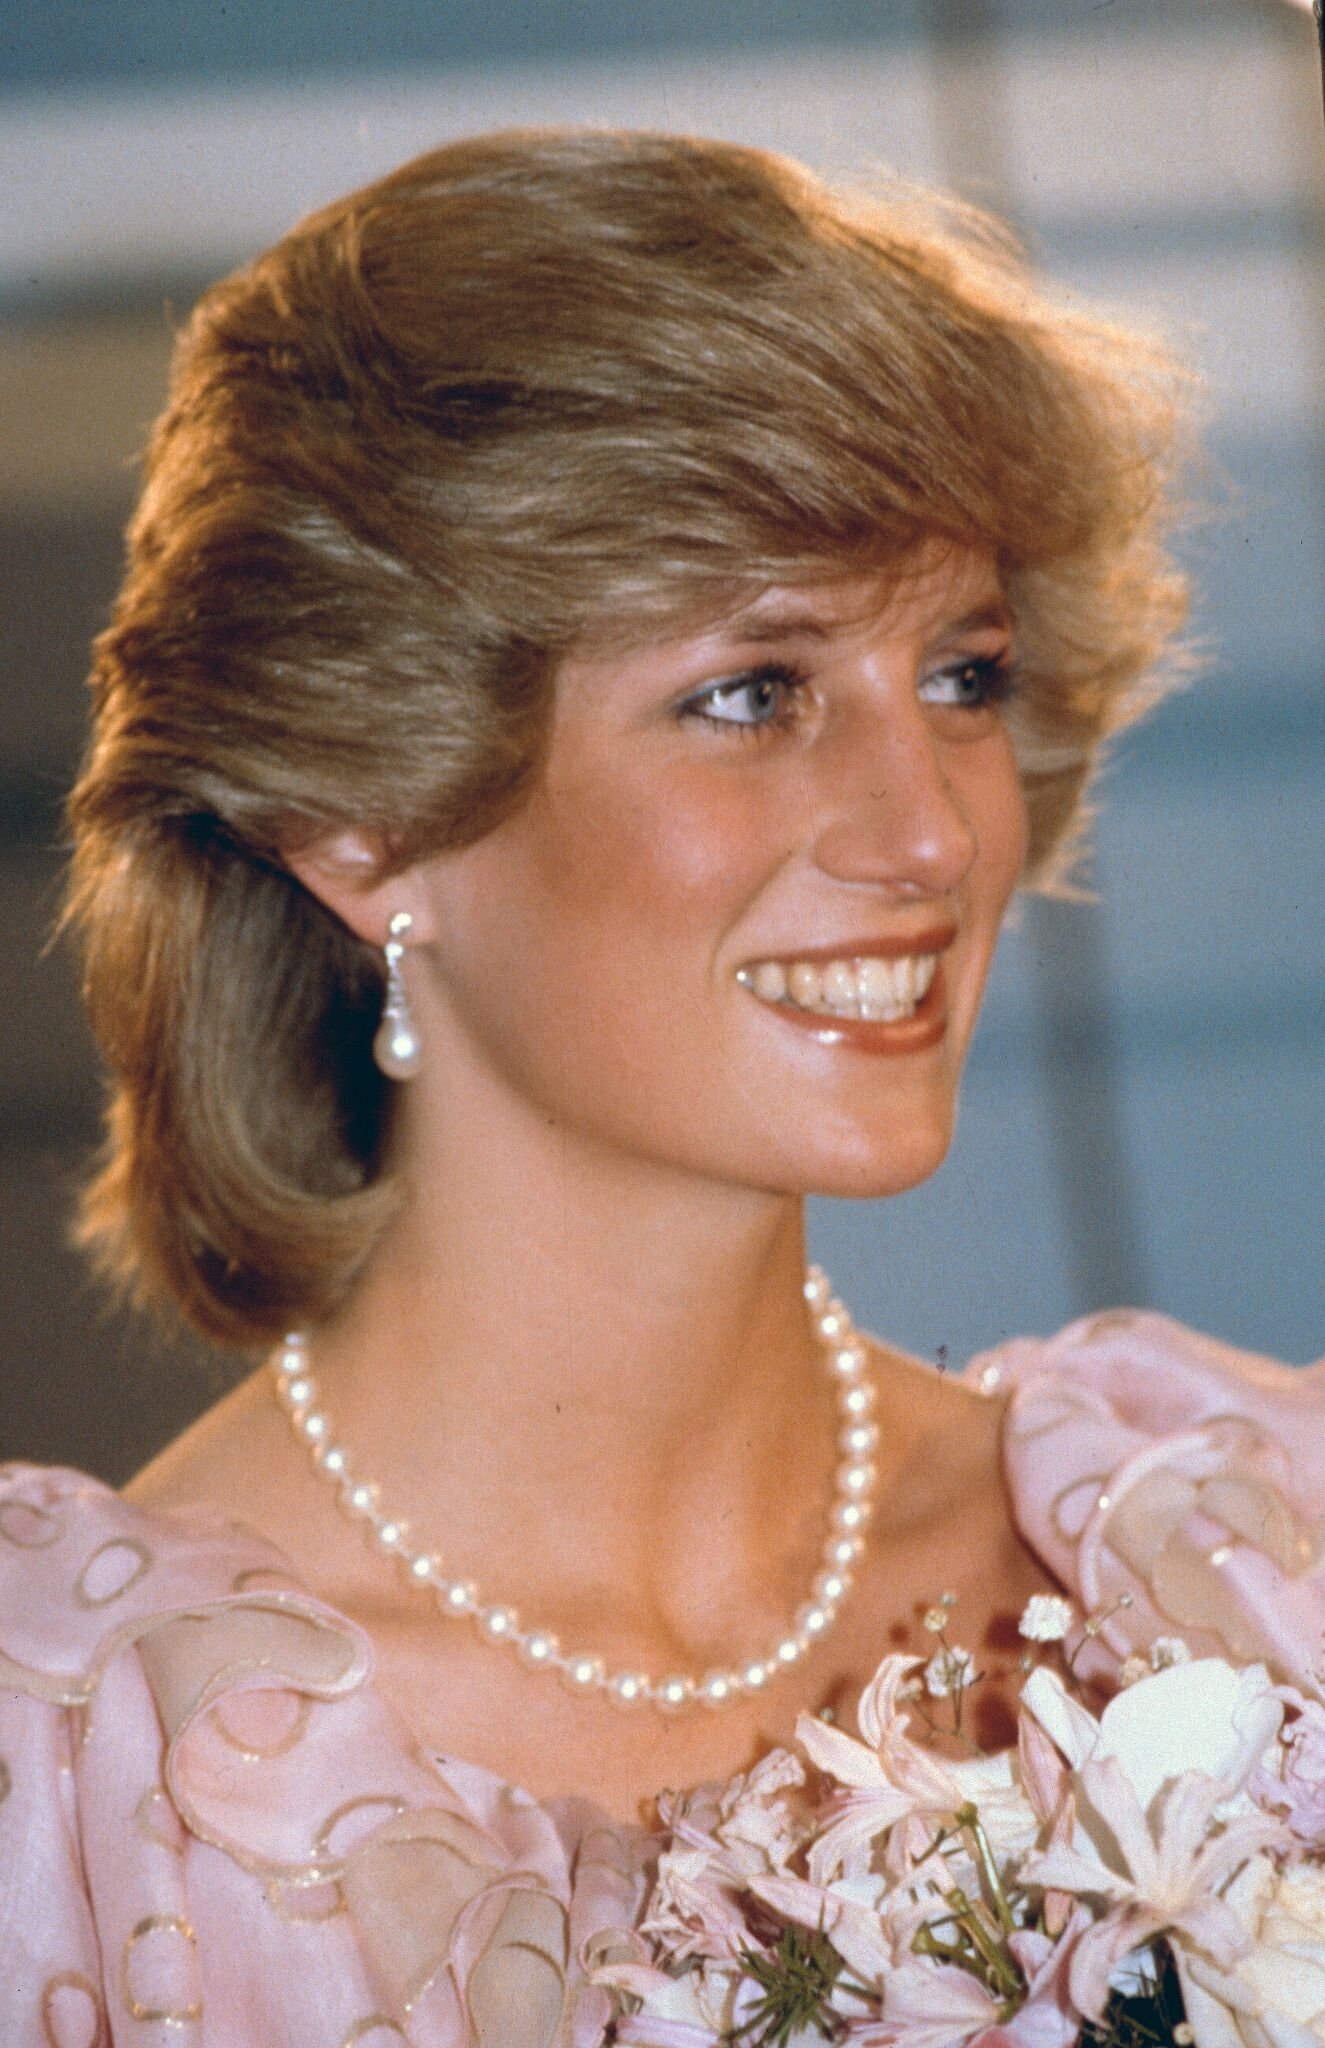 Diana, Princess of Wales attends a gala concert during a tour of Australia on April 14, 1983 | Getty Images / Global Images Ukraine